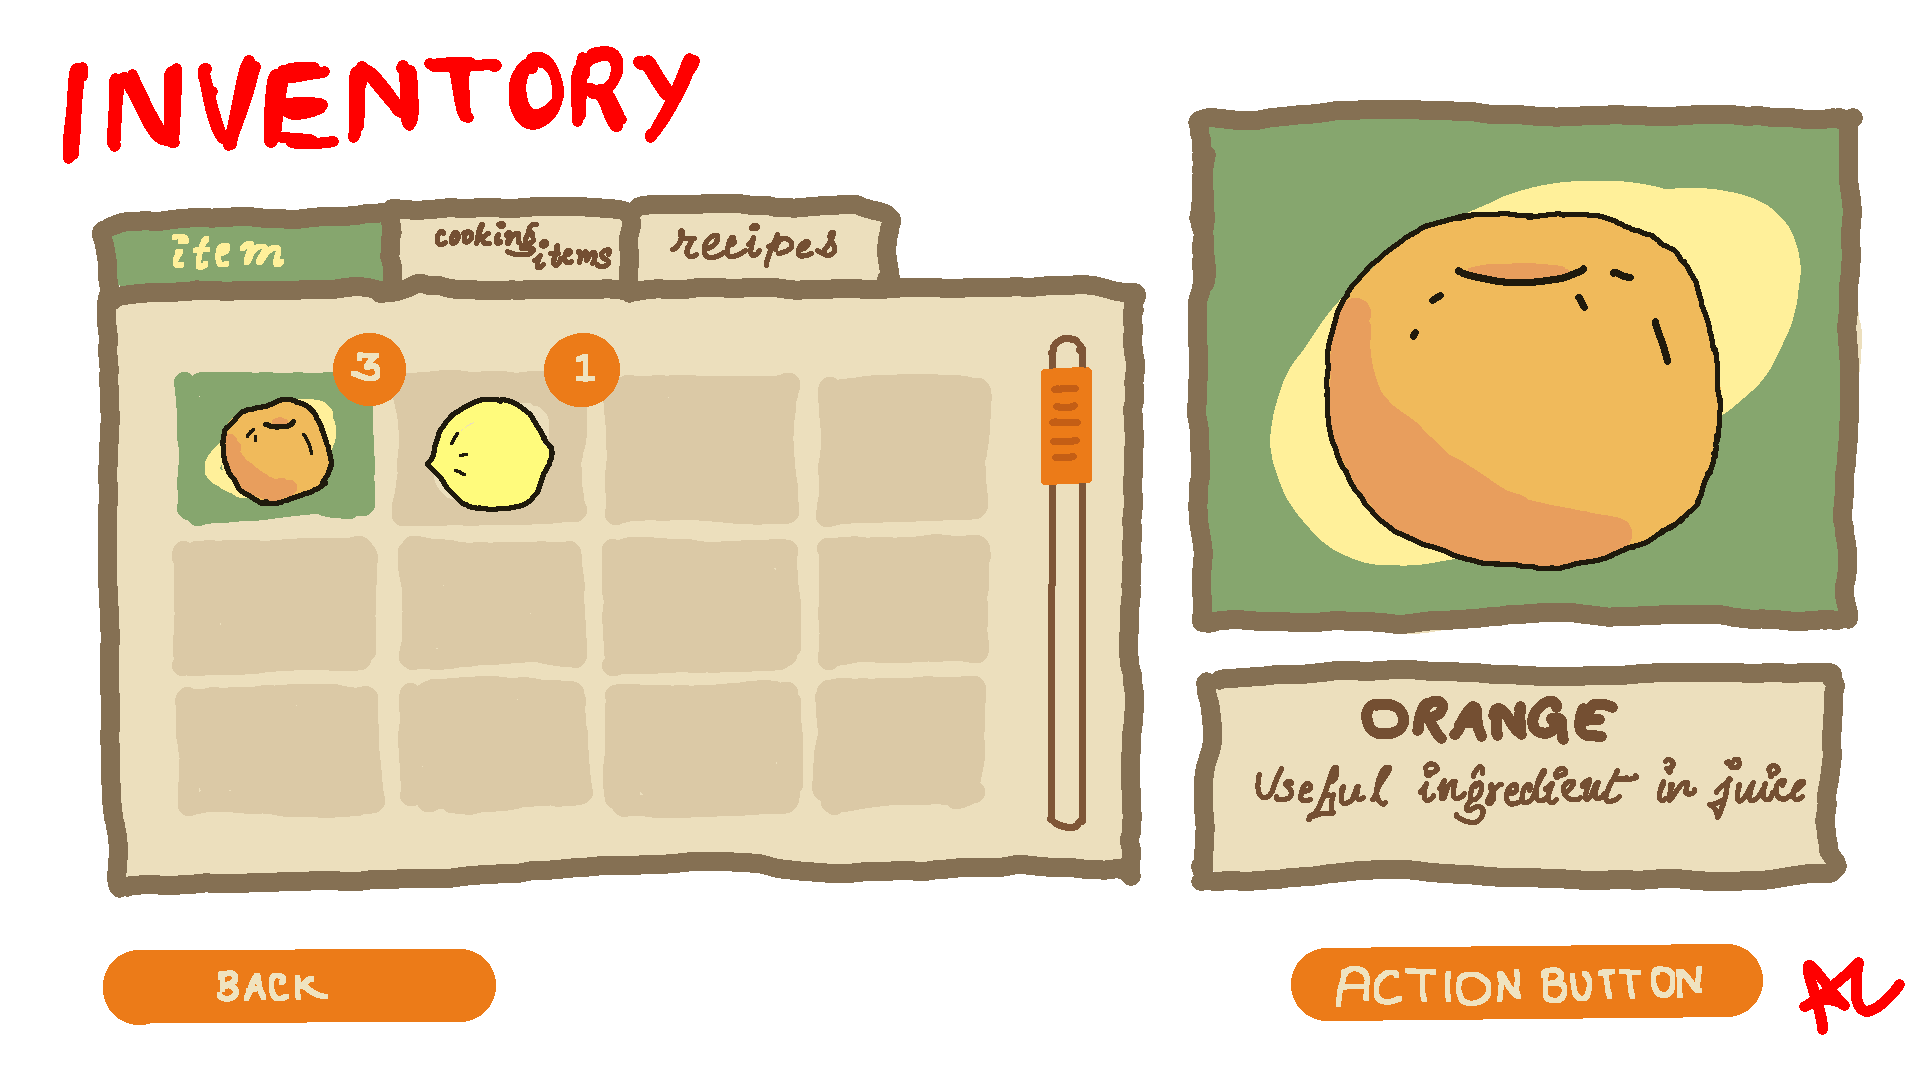 005_TestInventoryWithIcon.png